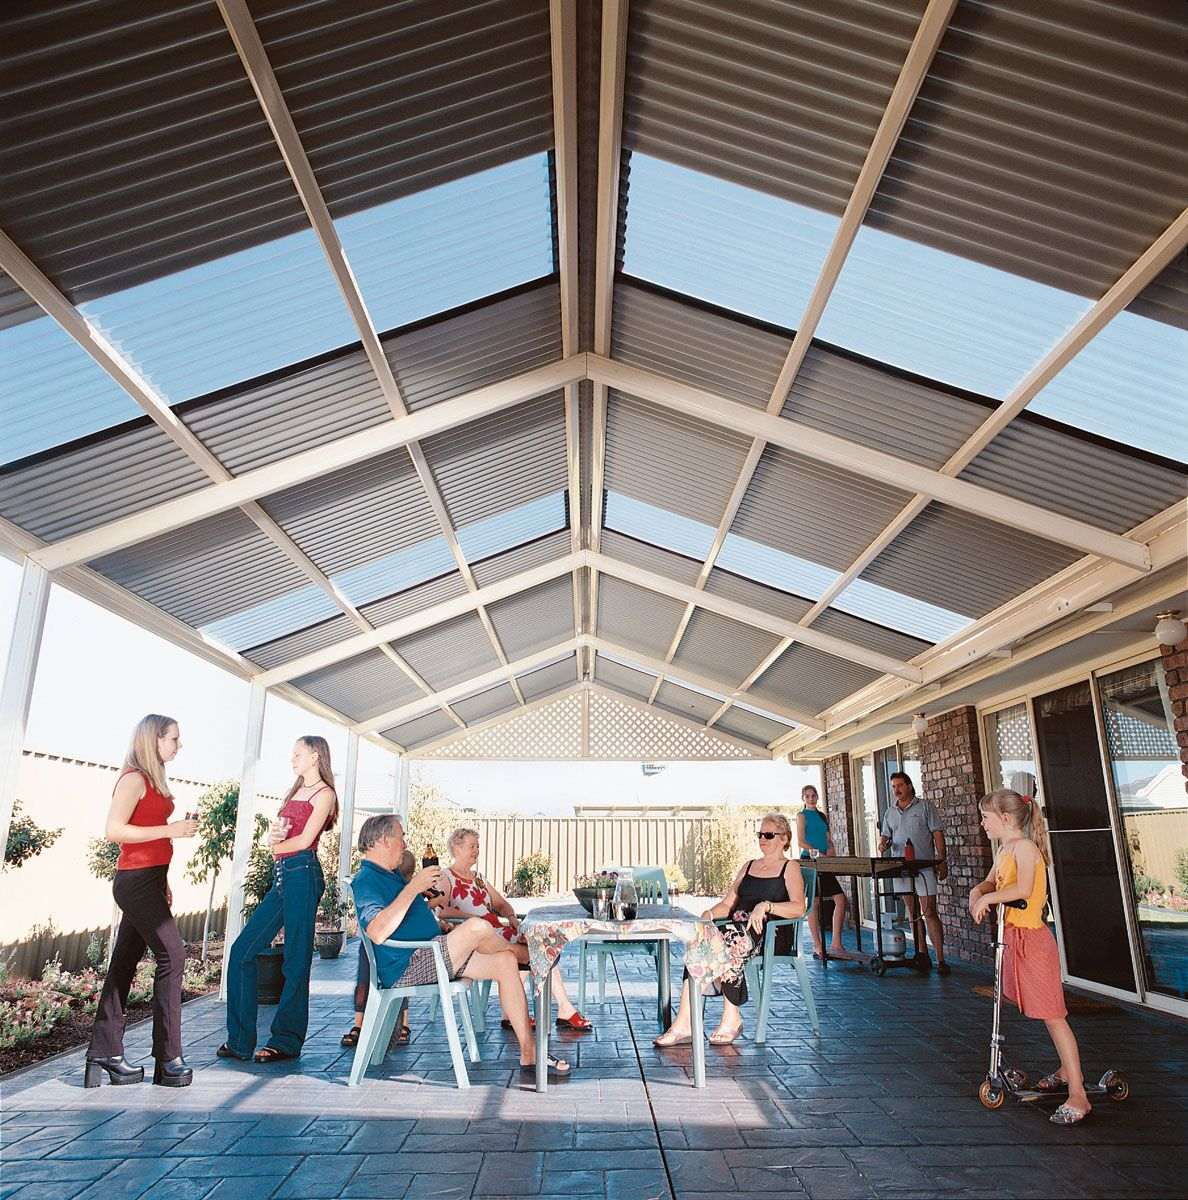 Gable Roof Patios In Melbourne Undercover Concepts